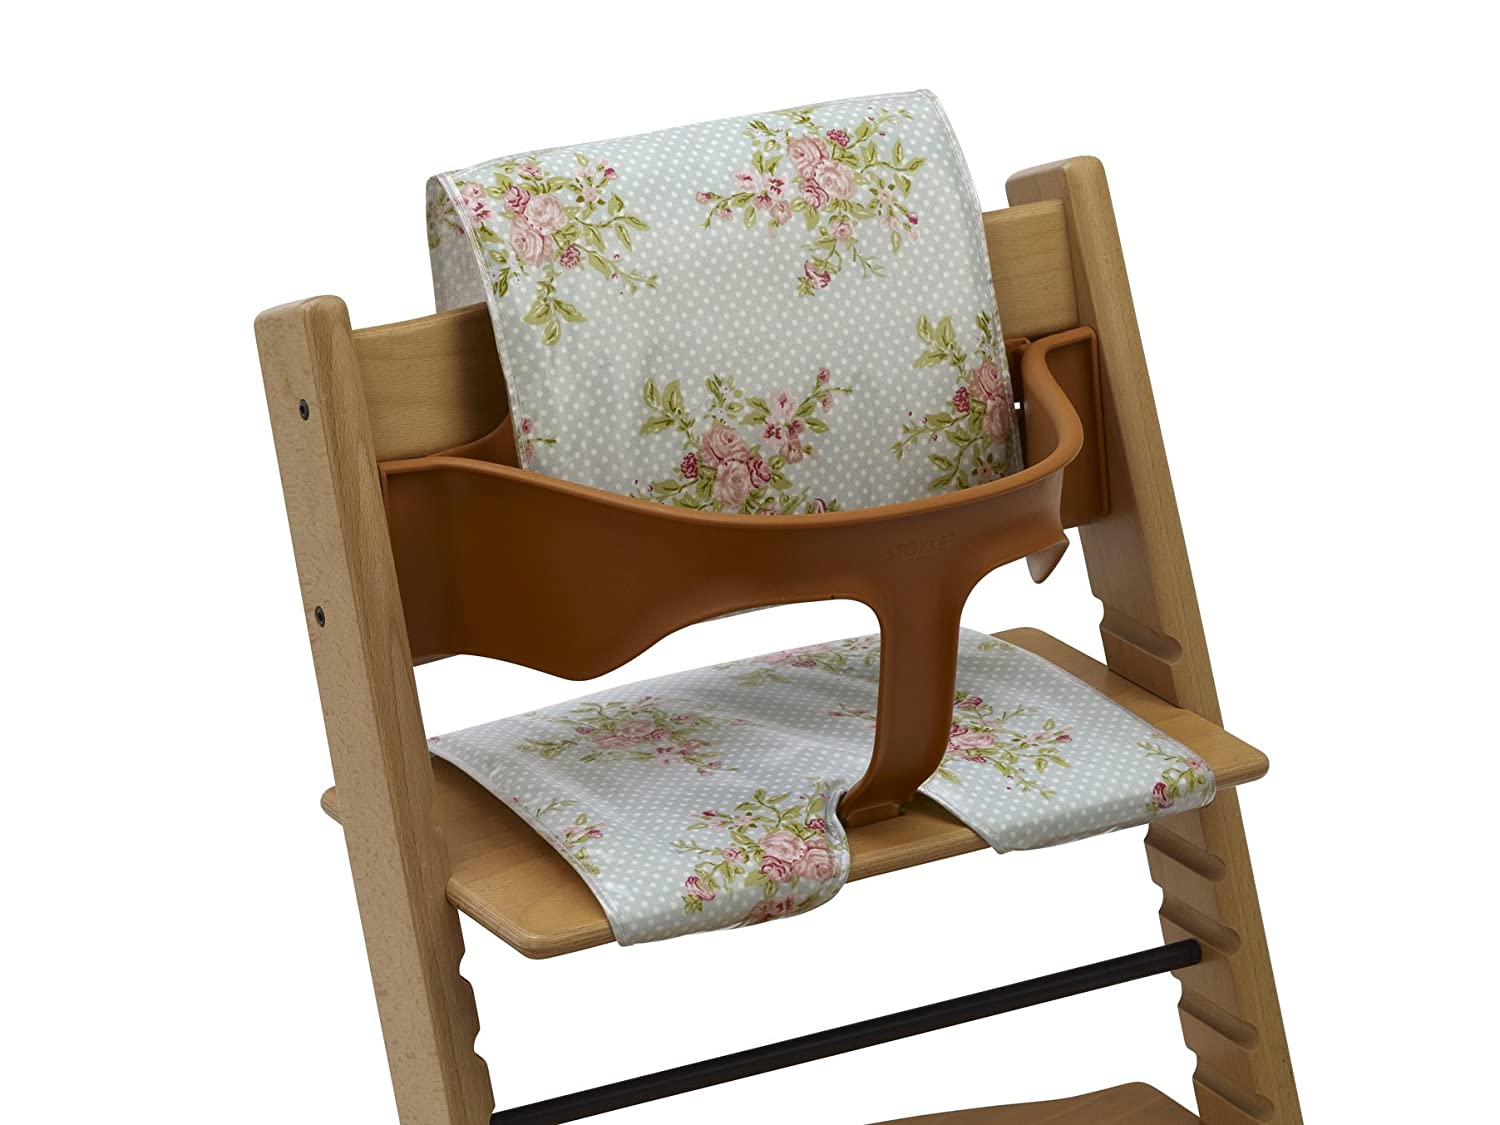 Highchair cushions - Wipe Clean oilcloth (Pastel Roses) Messy Designs Ltd